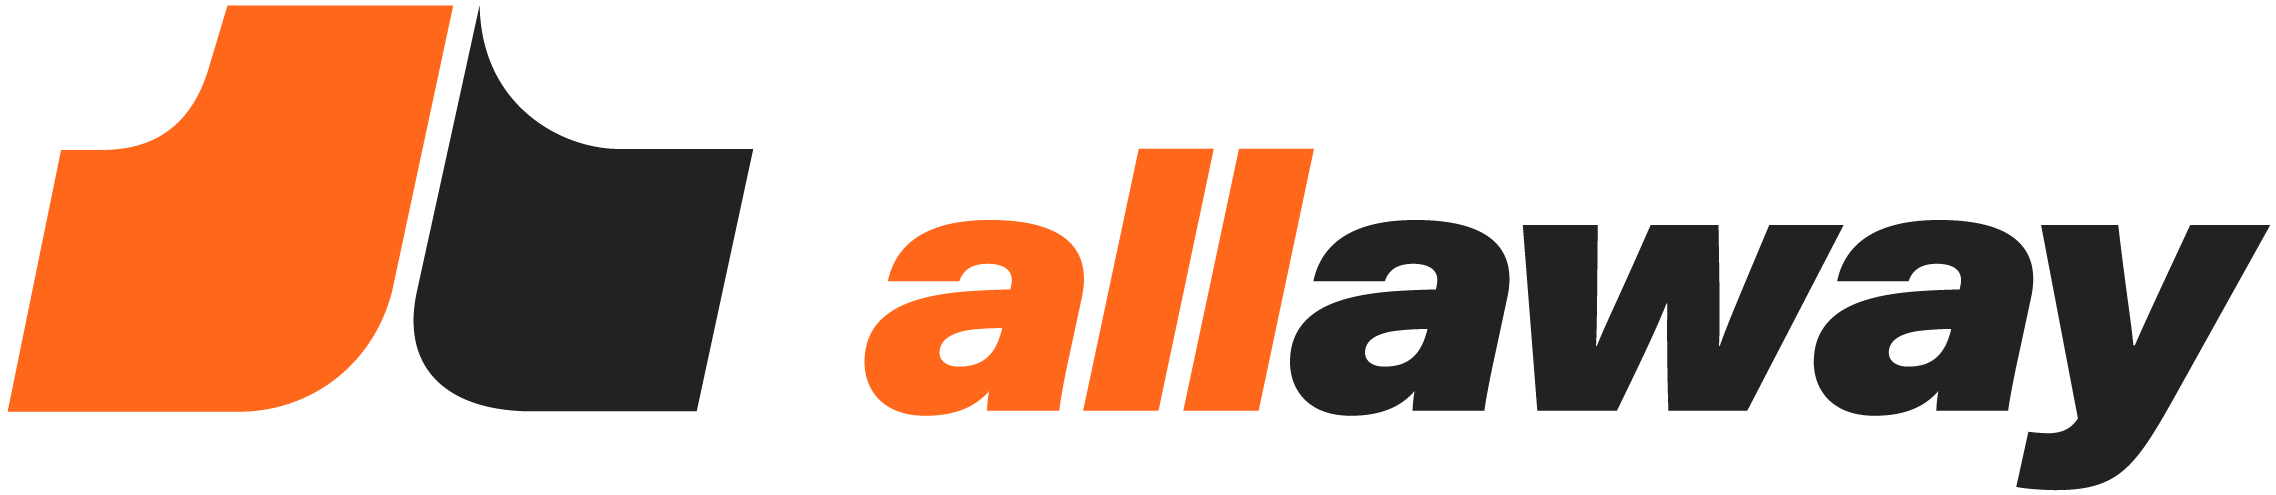 allaway logo with text